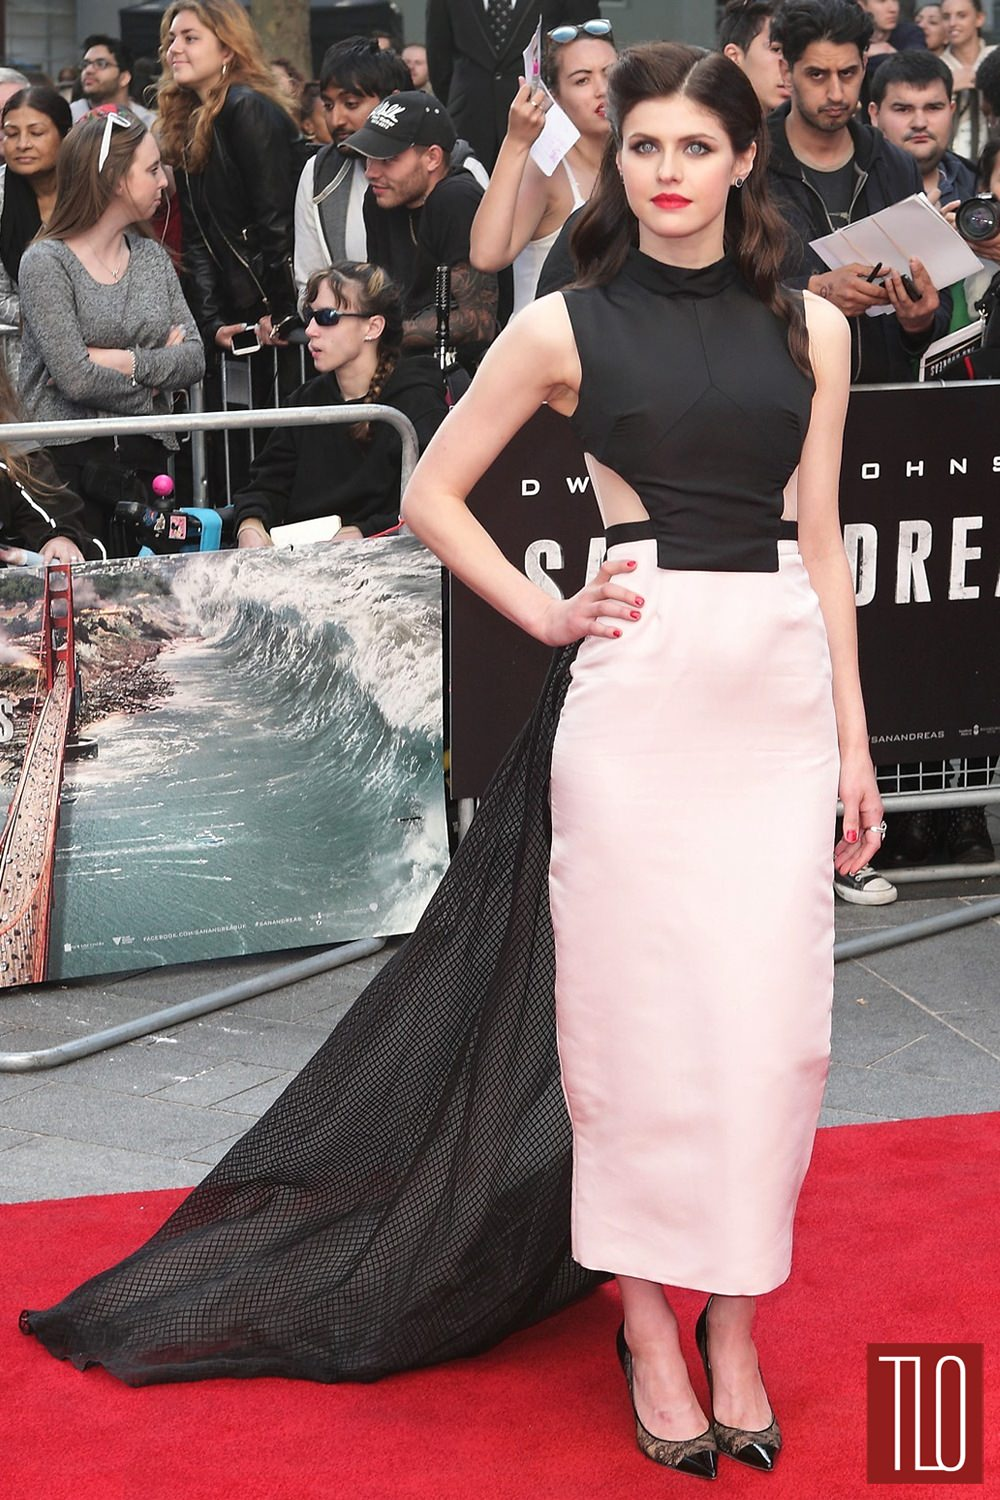 Alexandra-Daddario-San-Andreas-London-Movie-Premiere-Red-Carpet-Fashion-Bibhu-Mohapatra-Tom-Lorenzo-Site-TLO (1)